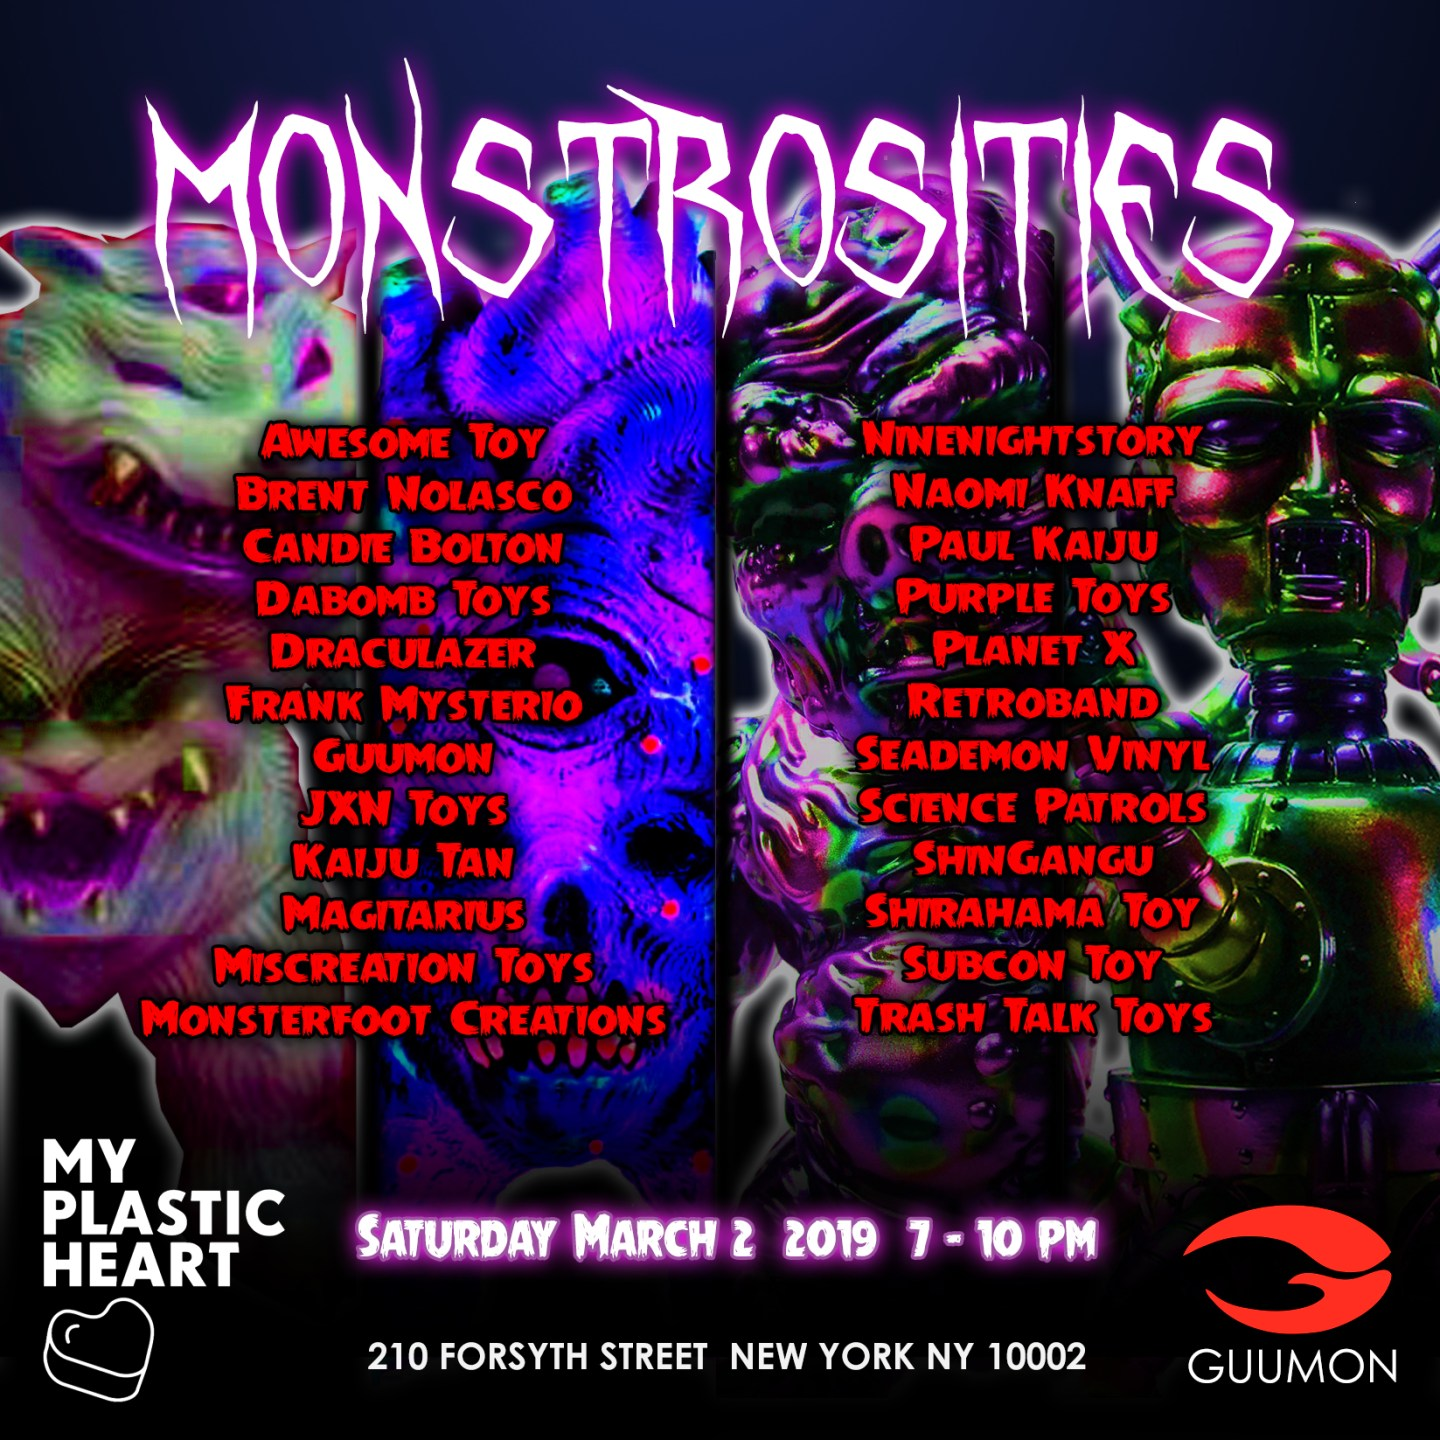 Monstrosities 2019 opens March 2nd